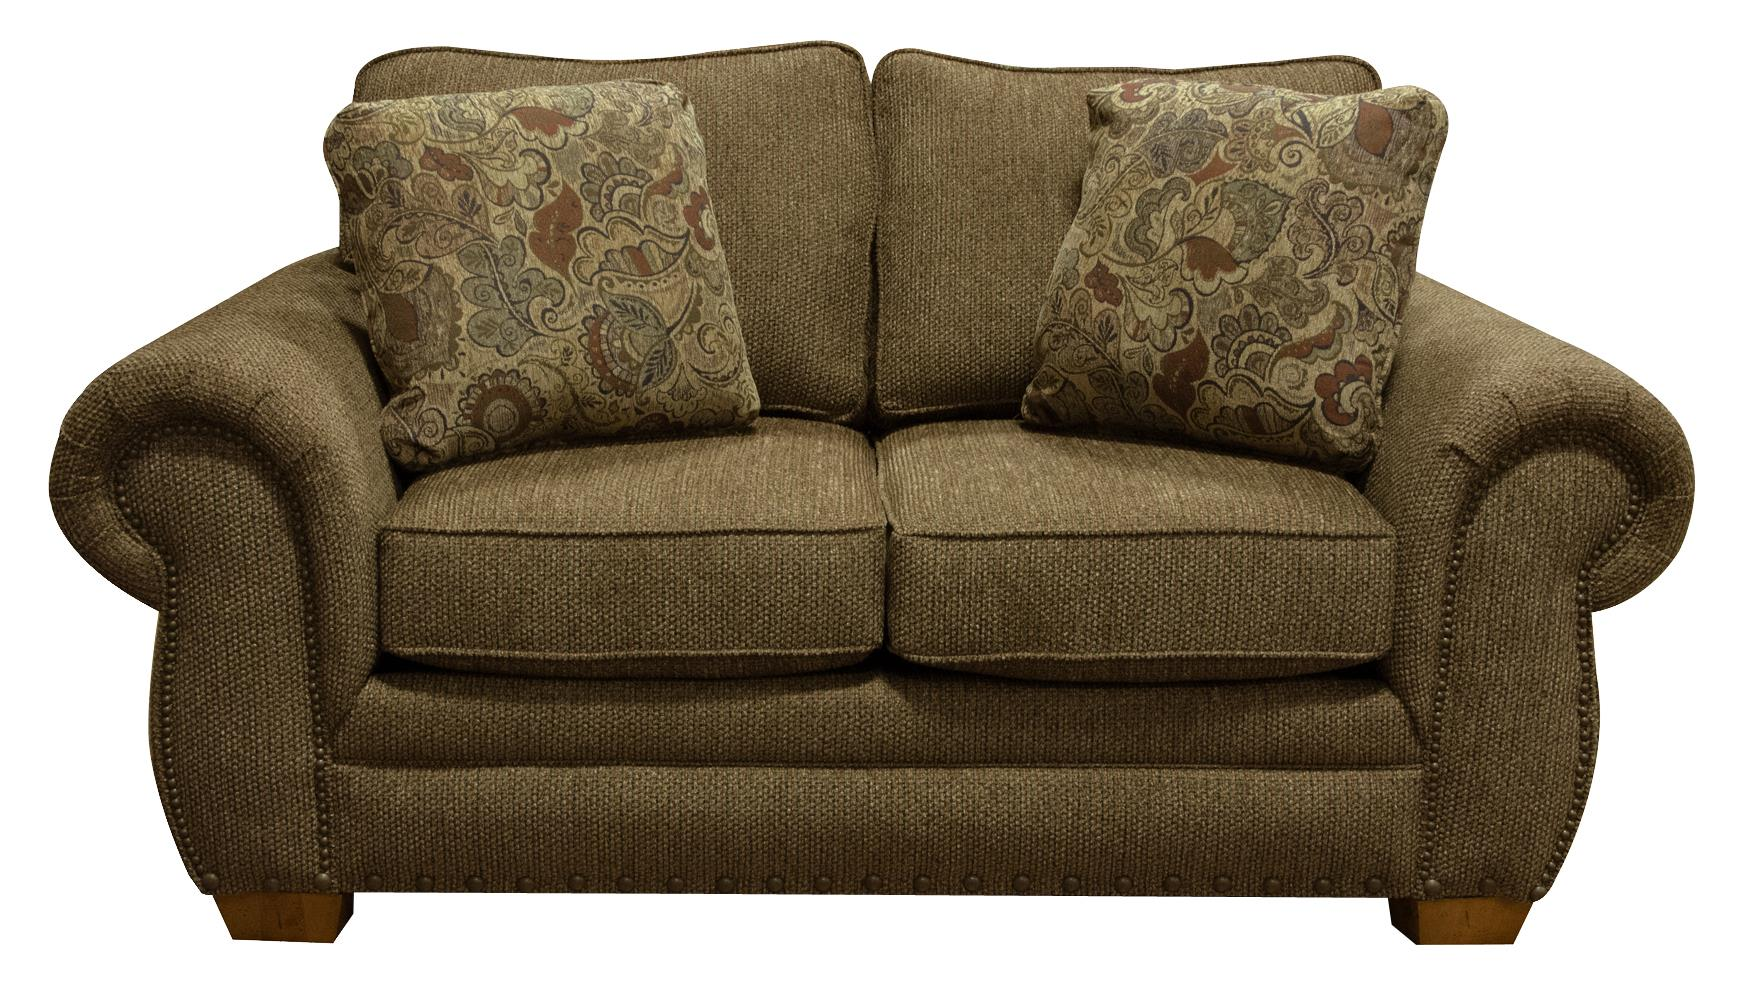 England Walters Loveseat with Nailhead Trim - Item Number: 6636N-6432